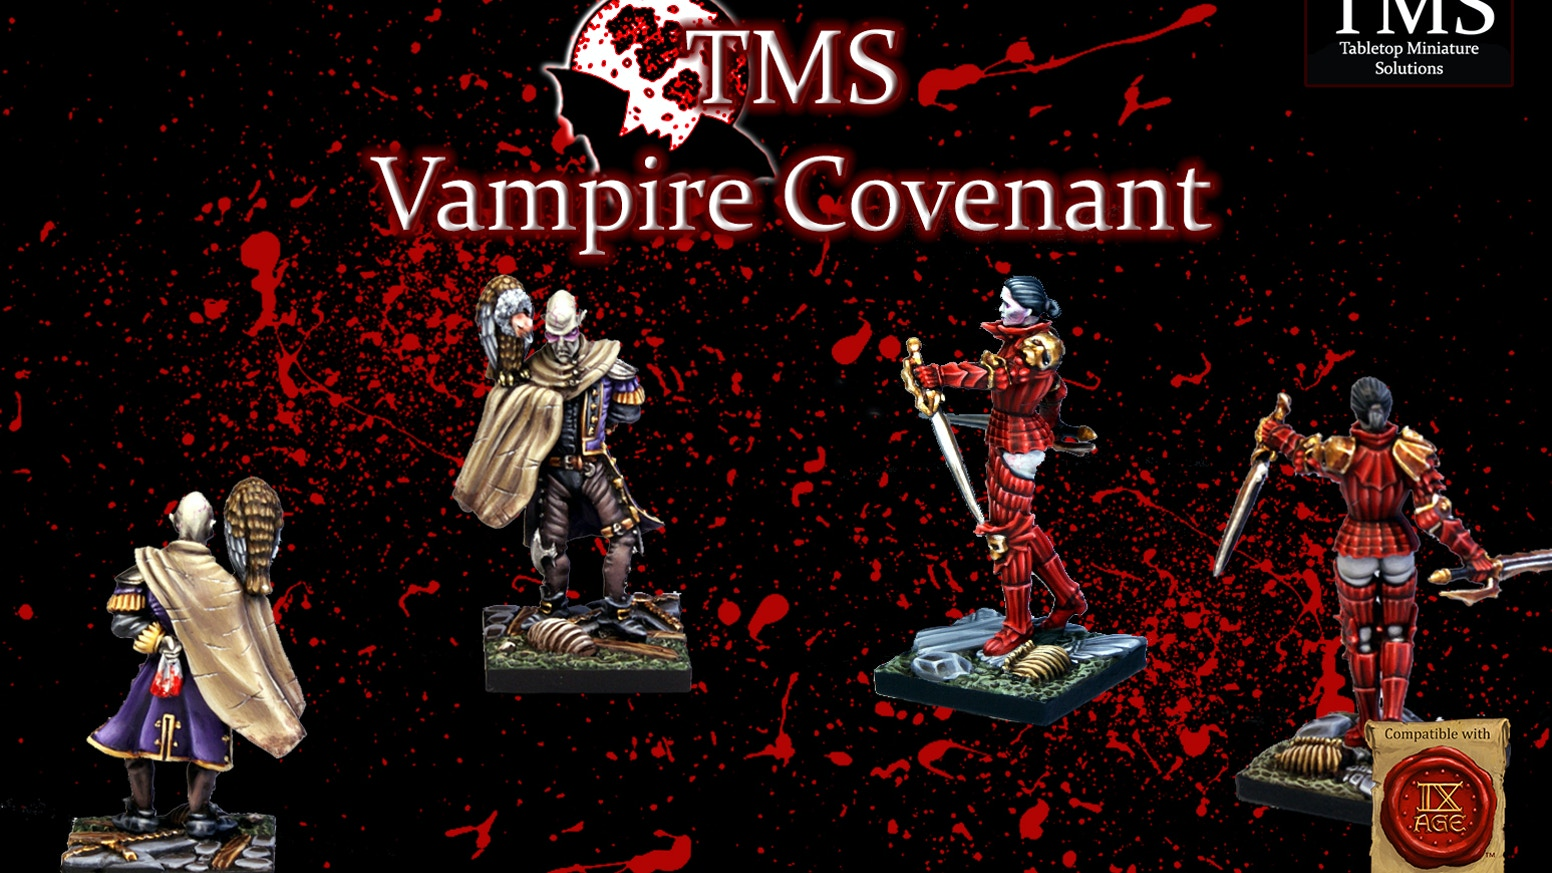 A complete Vampire Covenant army, to be used in your Fantasy Battles: The 9th Age games or for your other desires.